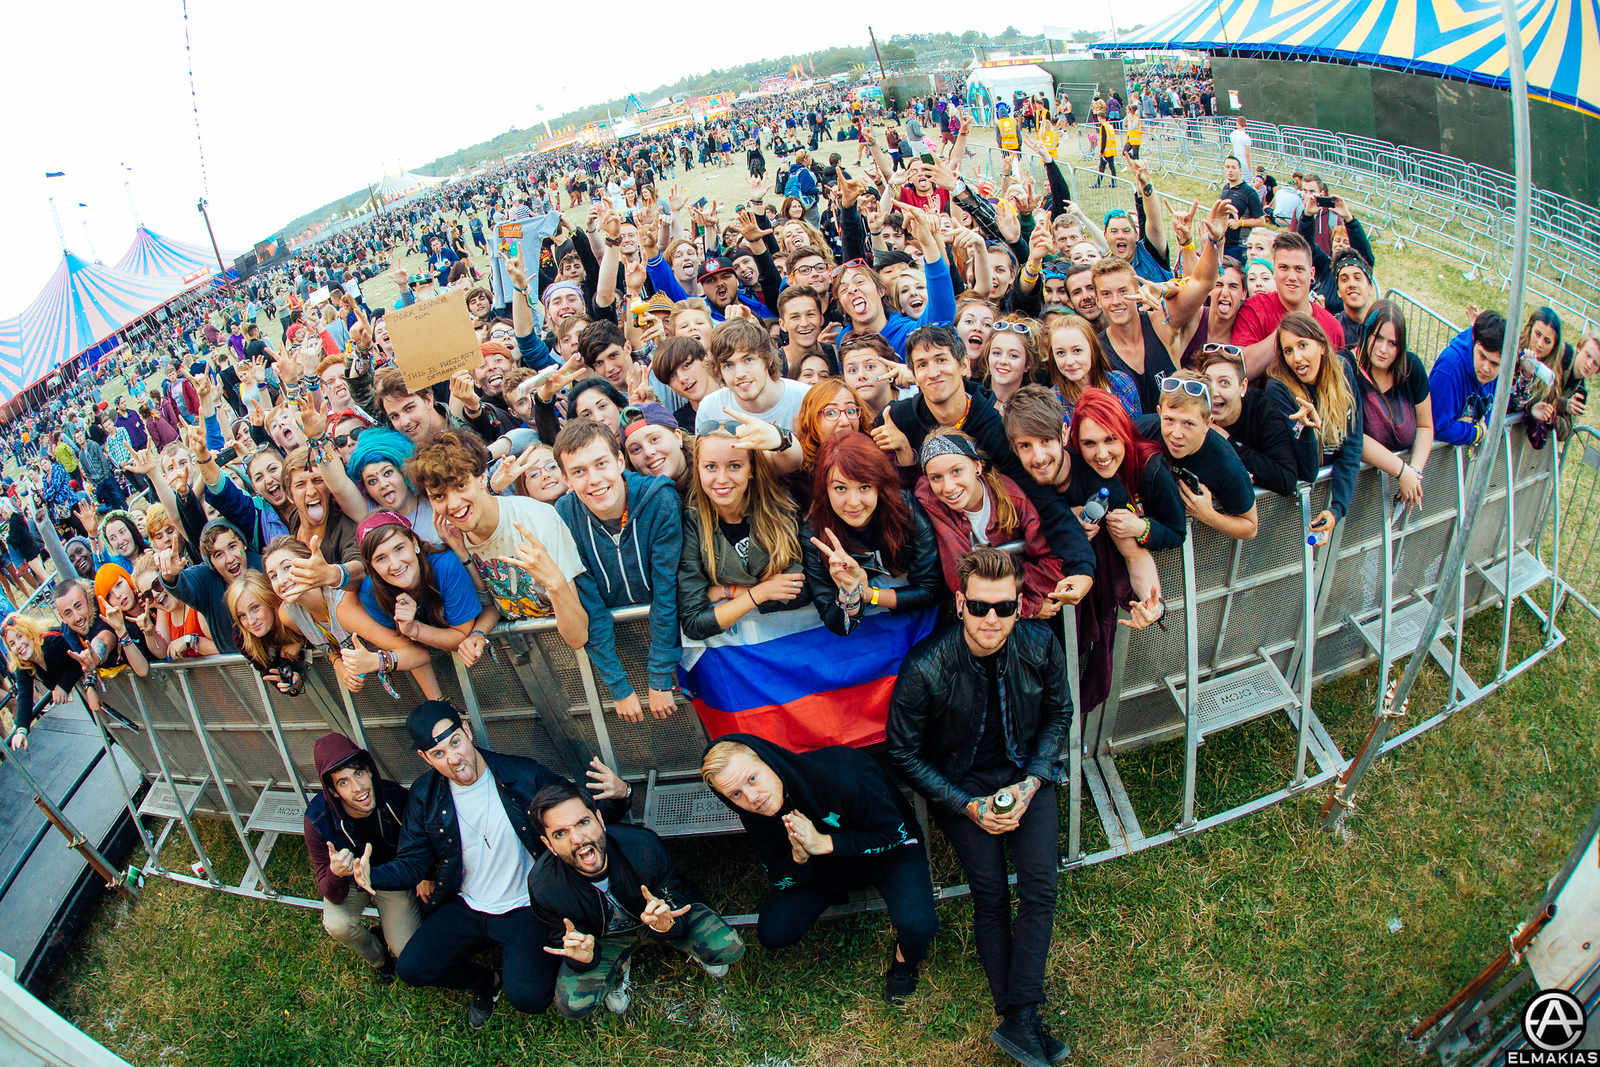 A Day To Remember and fans at Reading Festival